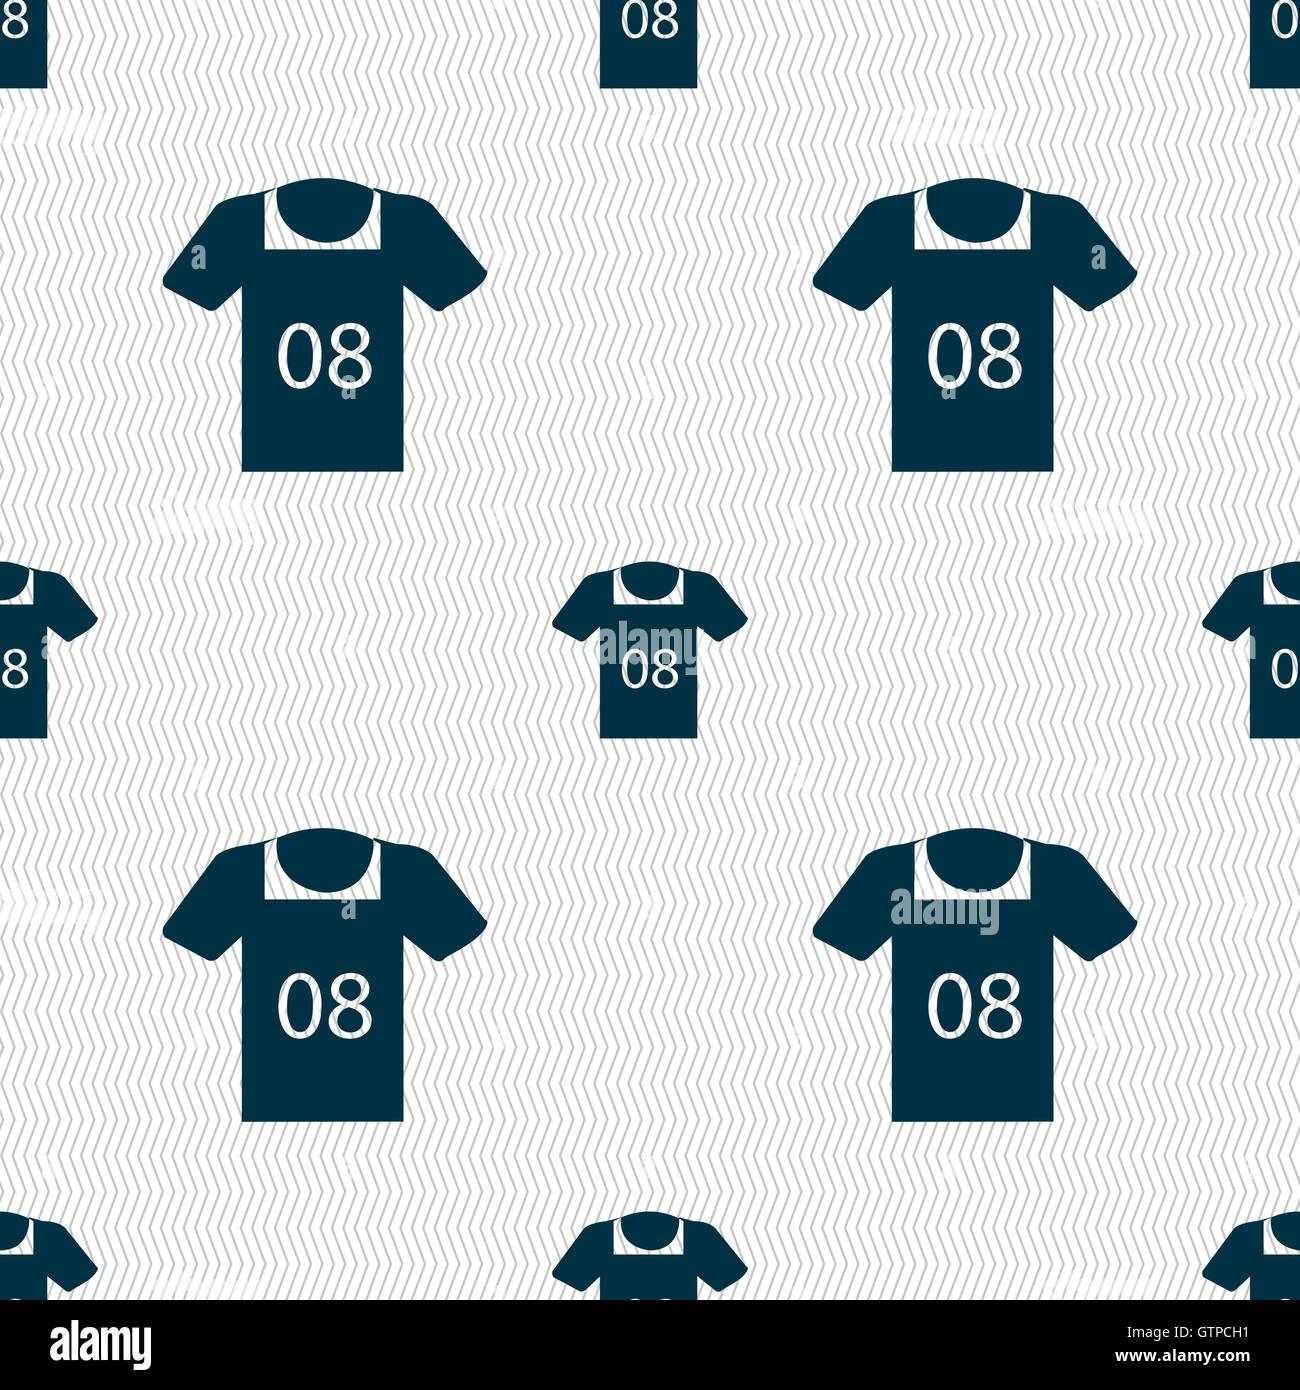 T Shirt Icon Sign Seamless Pattern Stock Photos & T Shirt